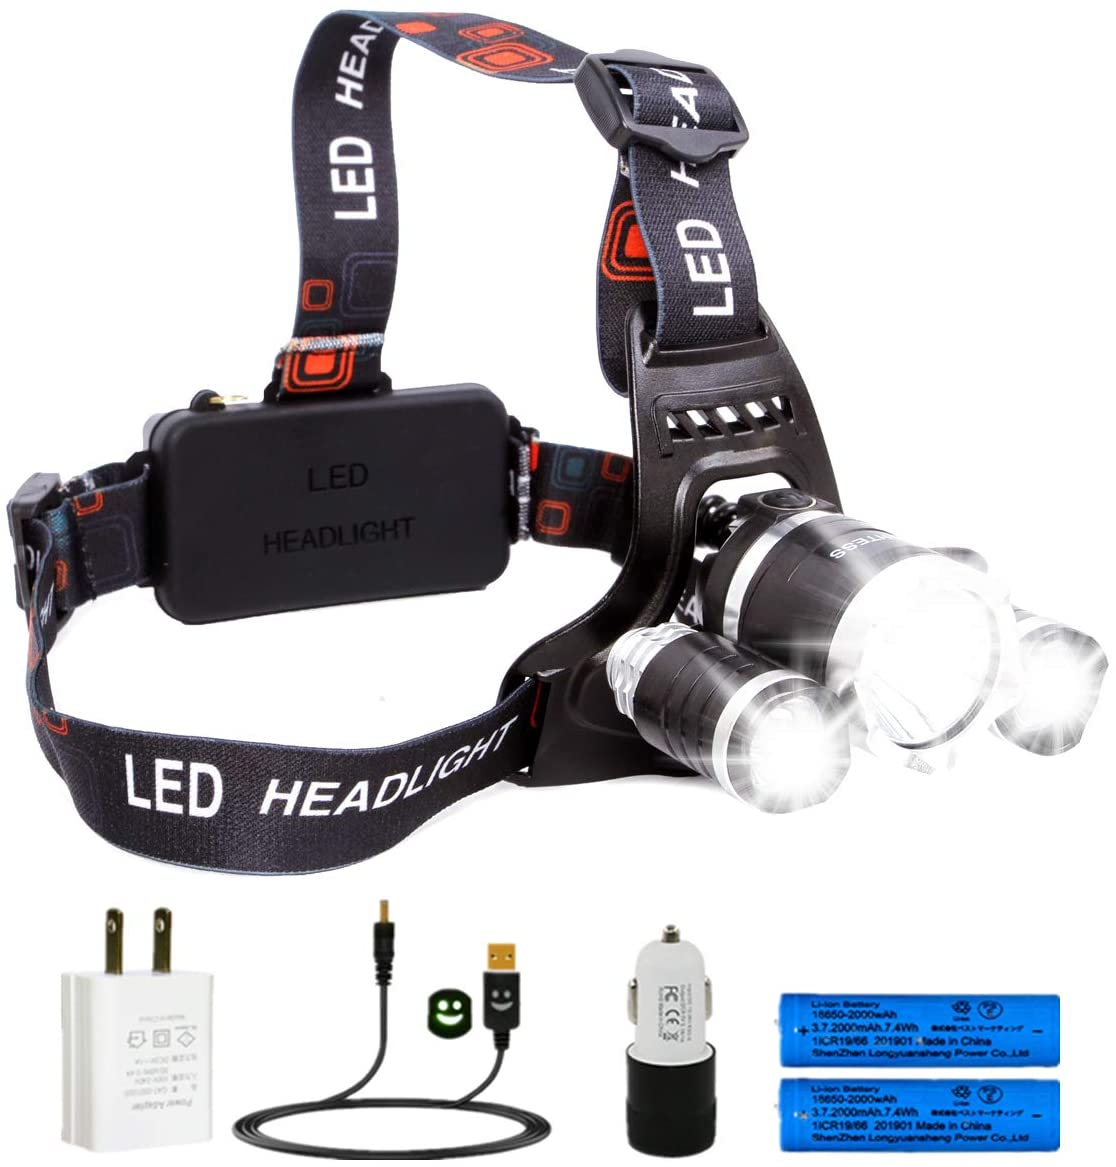 Lightess LED Headlamps Waterproof XM-L T6+2R2 Rechargeable Head Lamps for Hunting Camping, SQ124